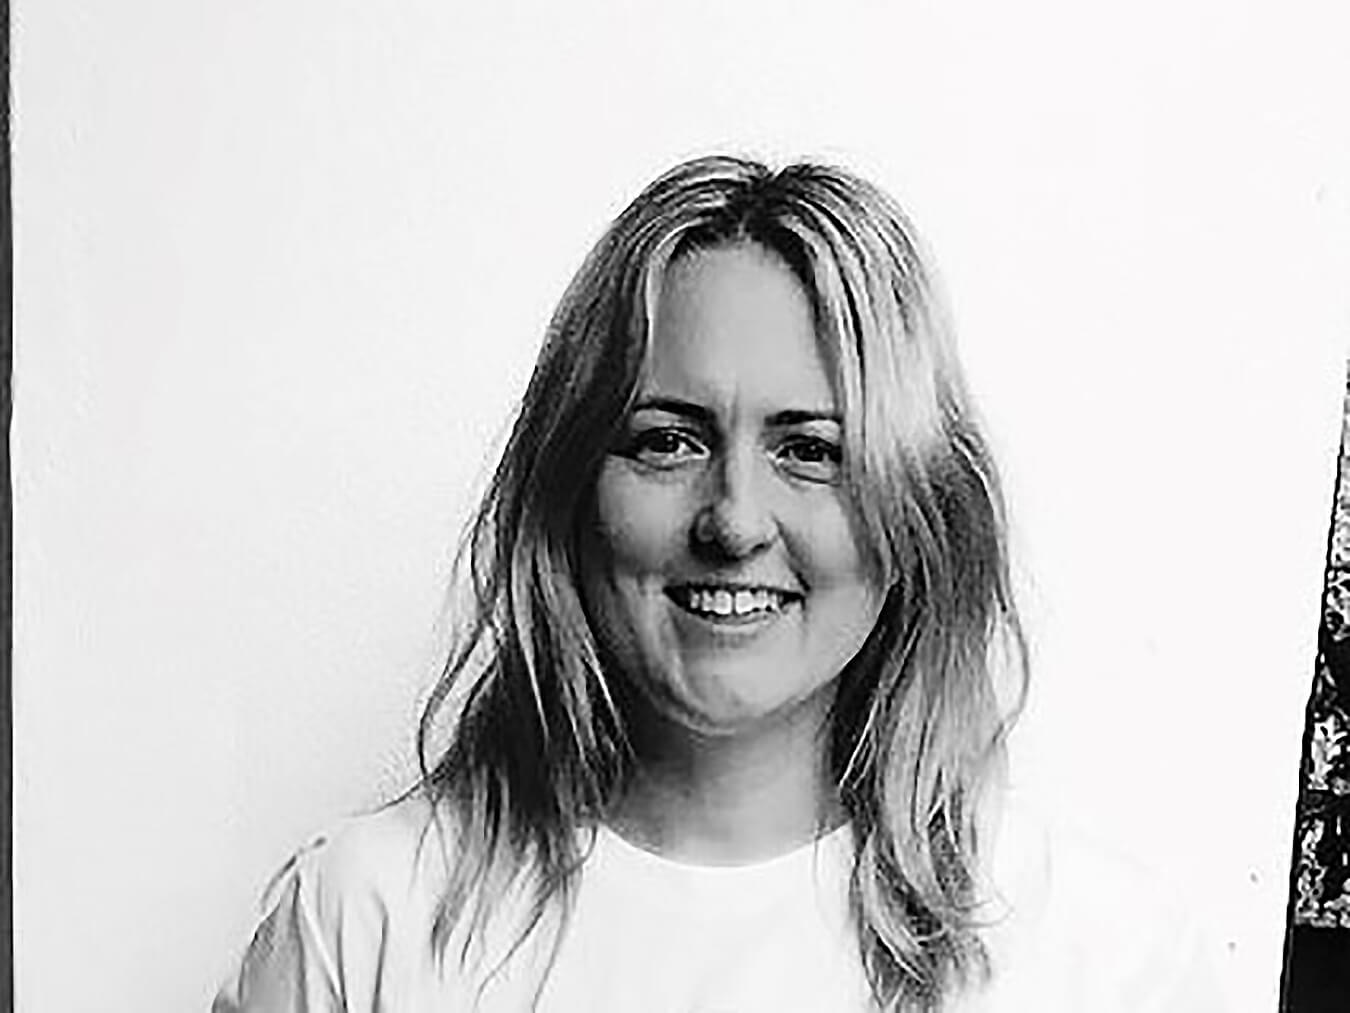 Claire Cunliffe headshot